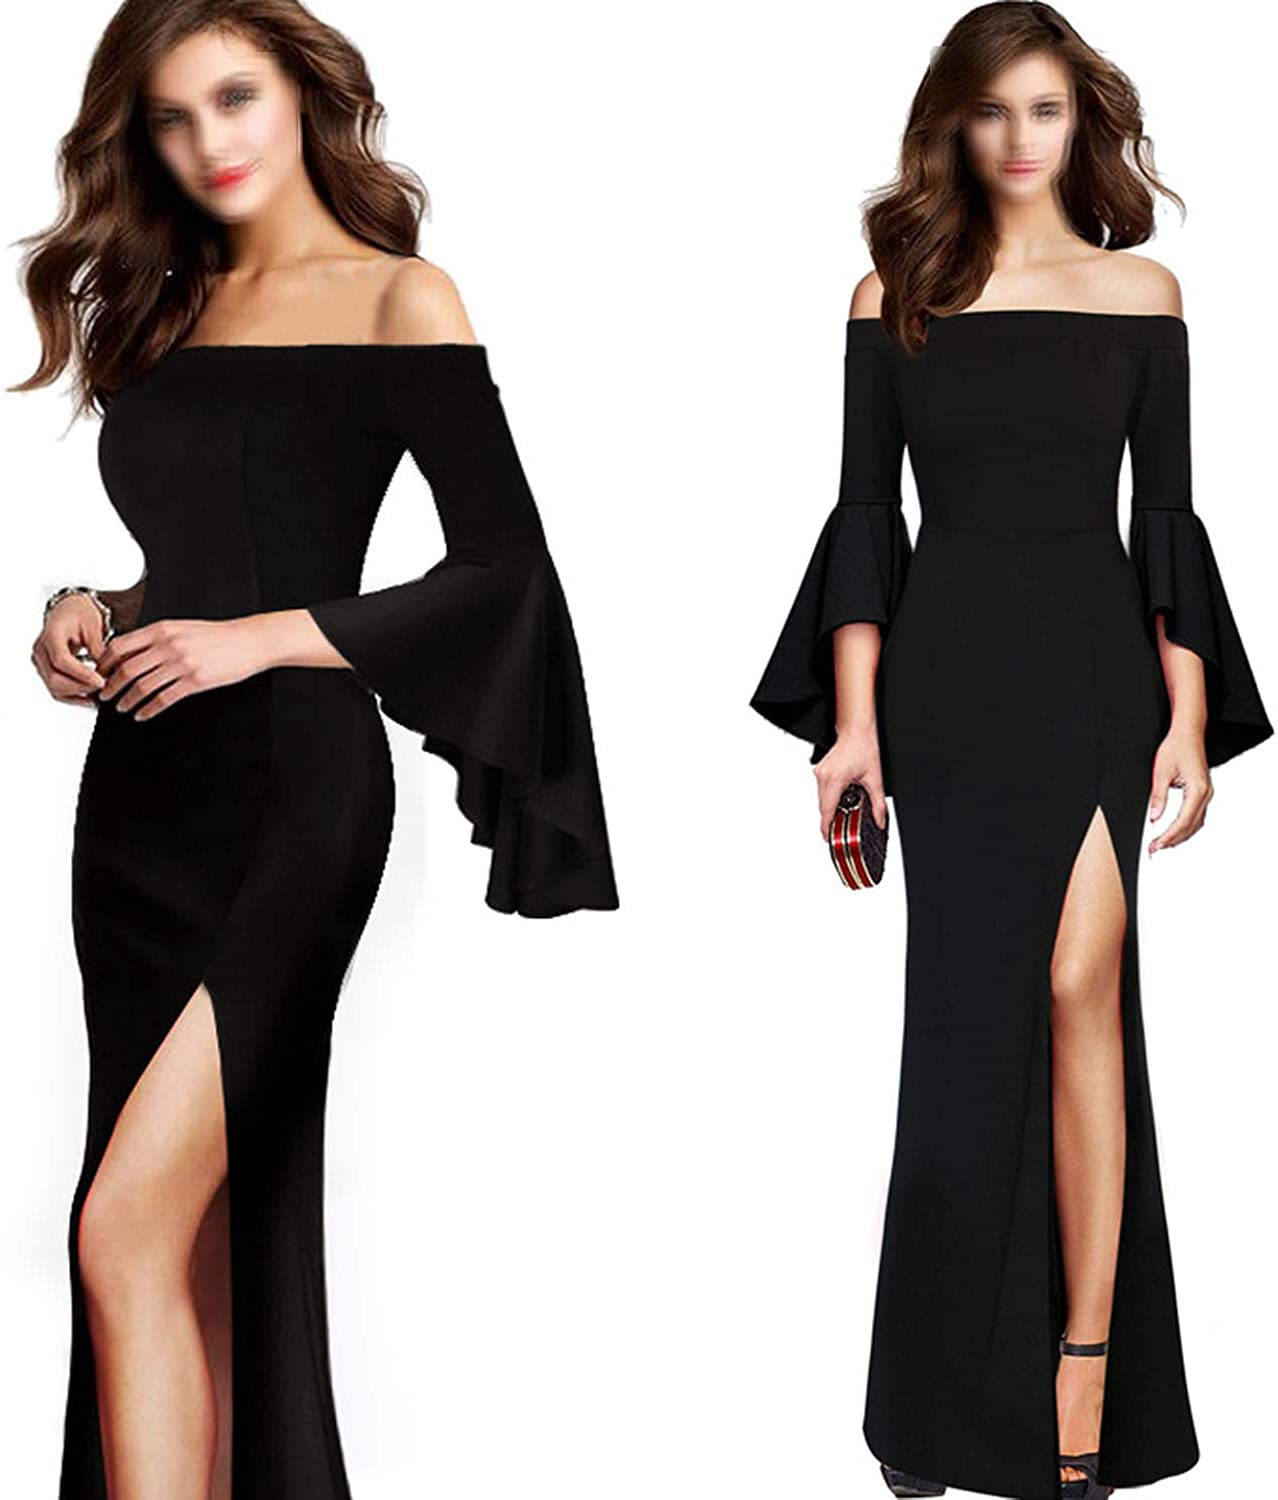 TheUniqueHouse Formal Party Dress Womens Elegant Flare Bell Sleeves Off Shoulder High Slit Bodycon Maxi Dress